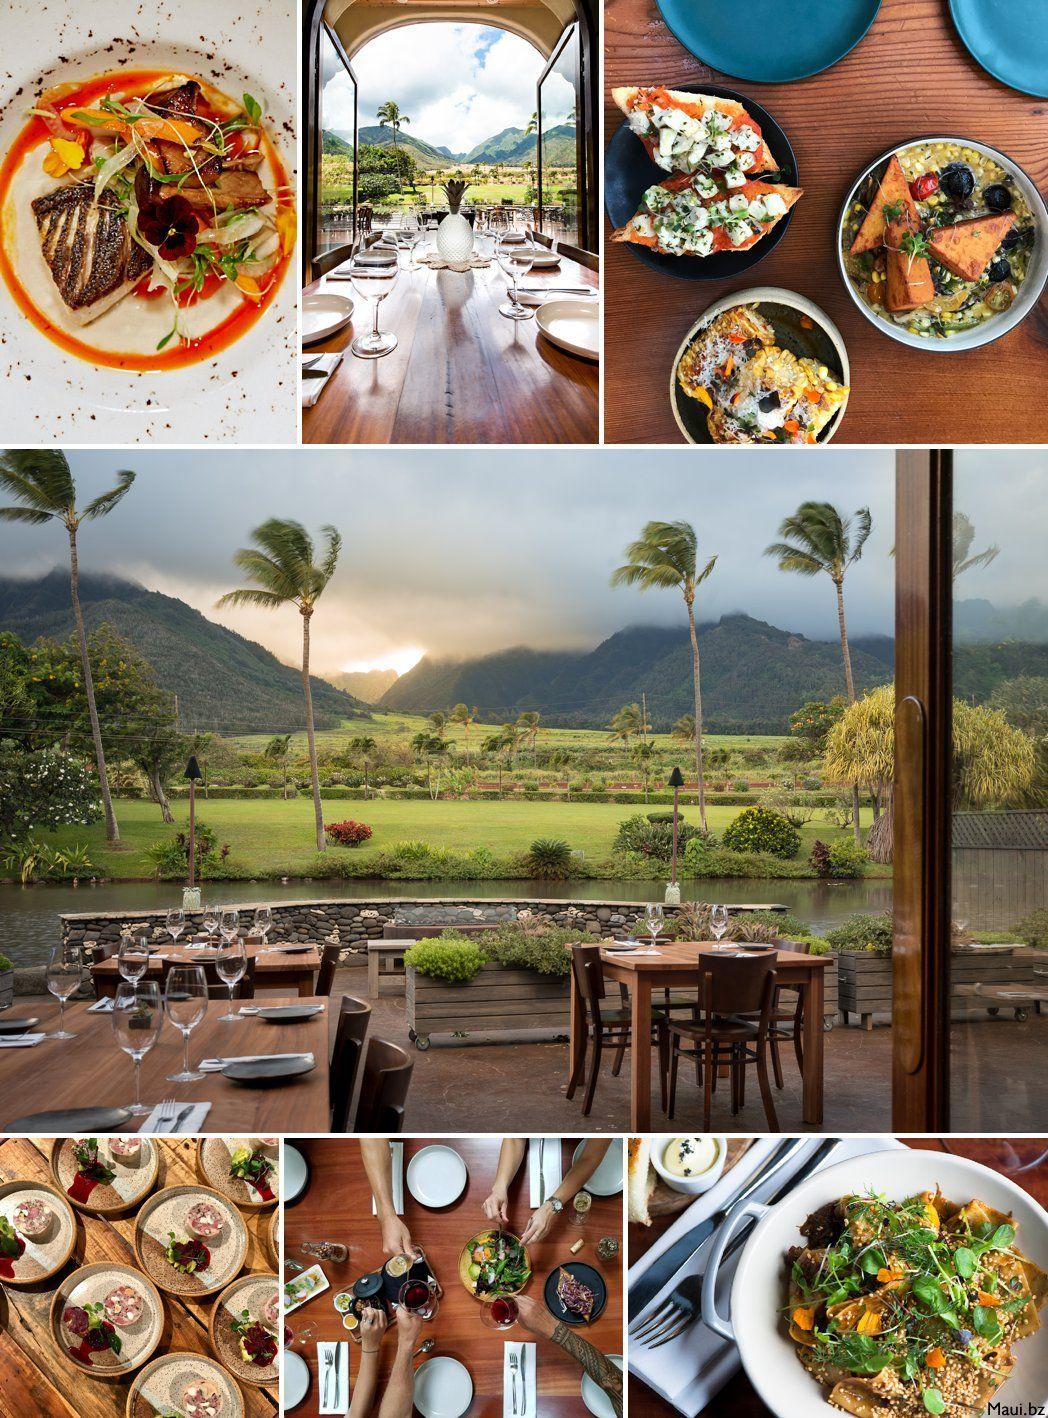 Maui Restaurants | Reviews of Restaurants in Maui, Hawaii | Maui restaurants,  Maui, House restaurant